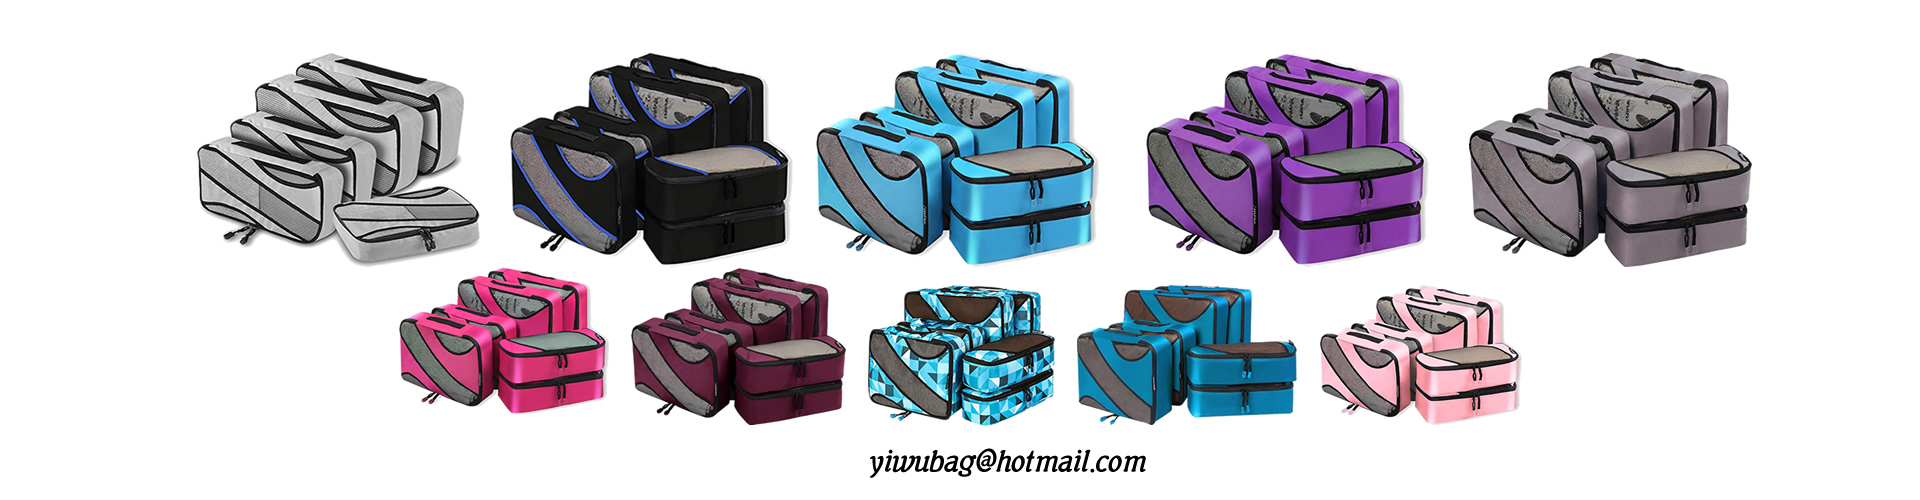 compression packing cubes help you save space of women suitcases